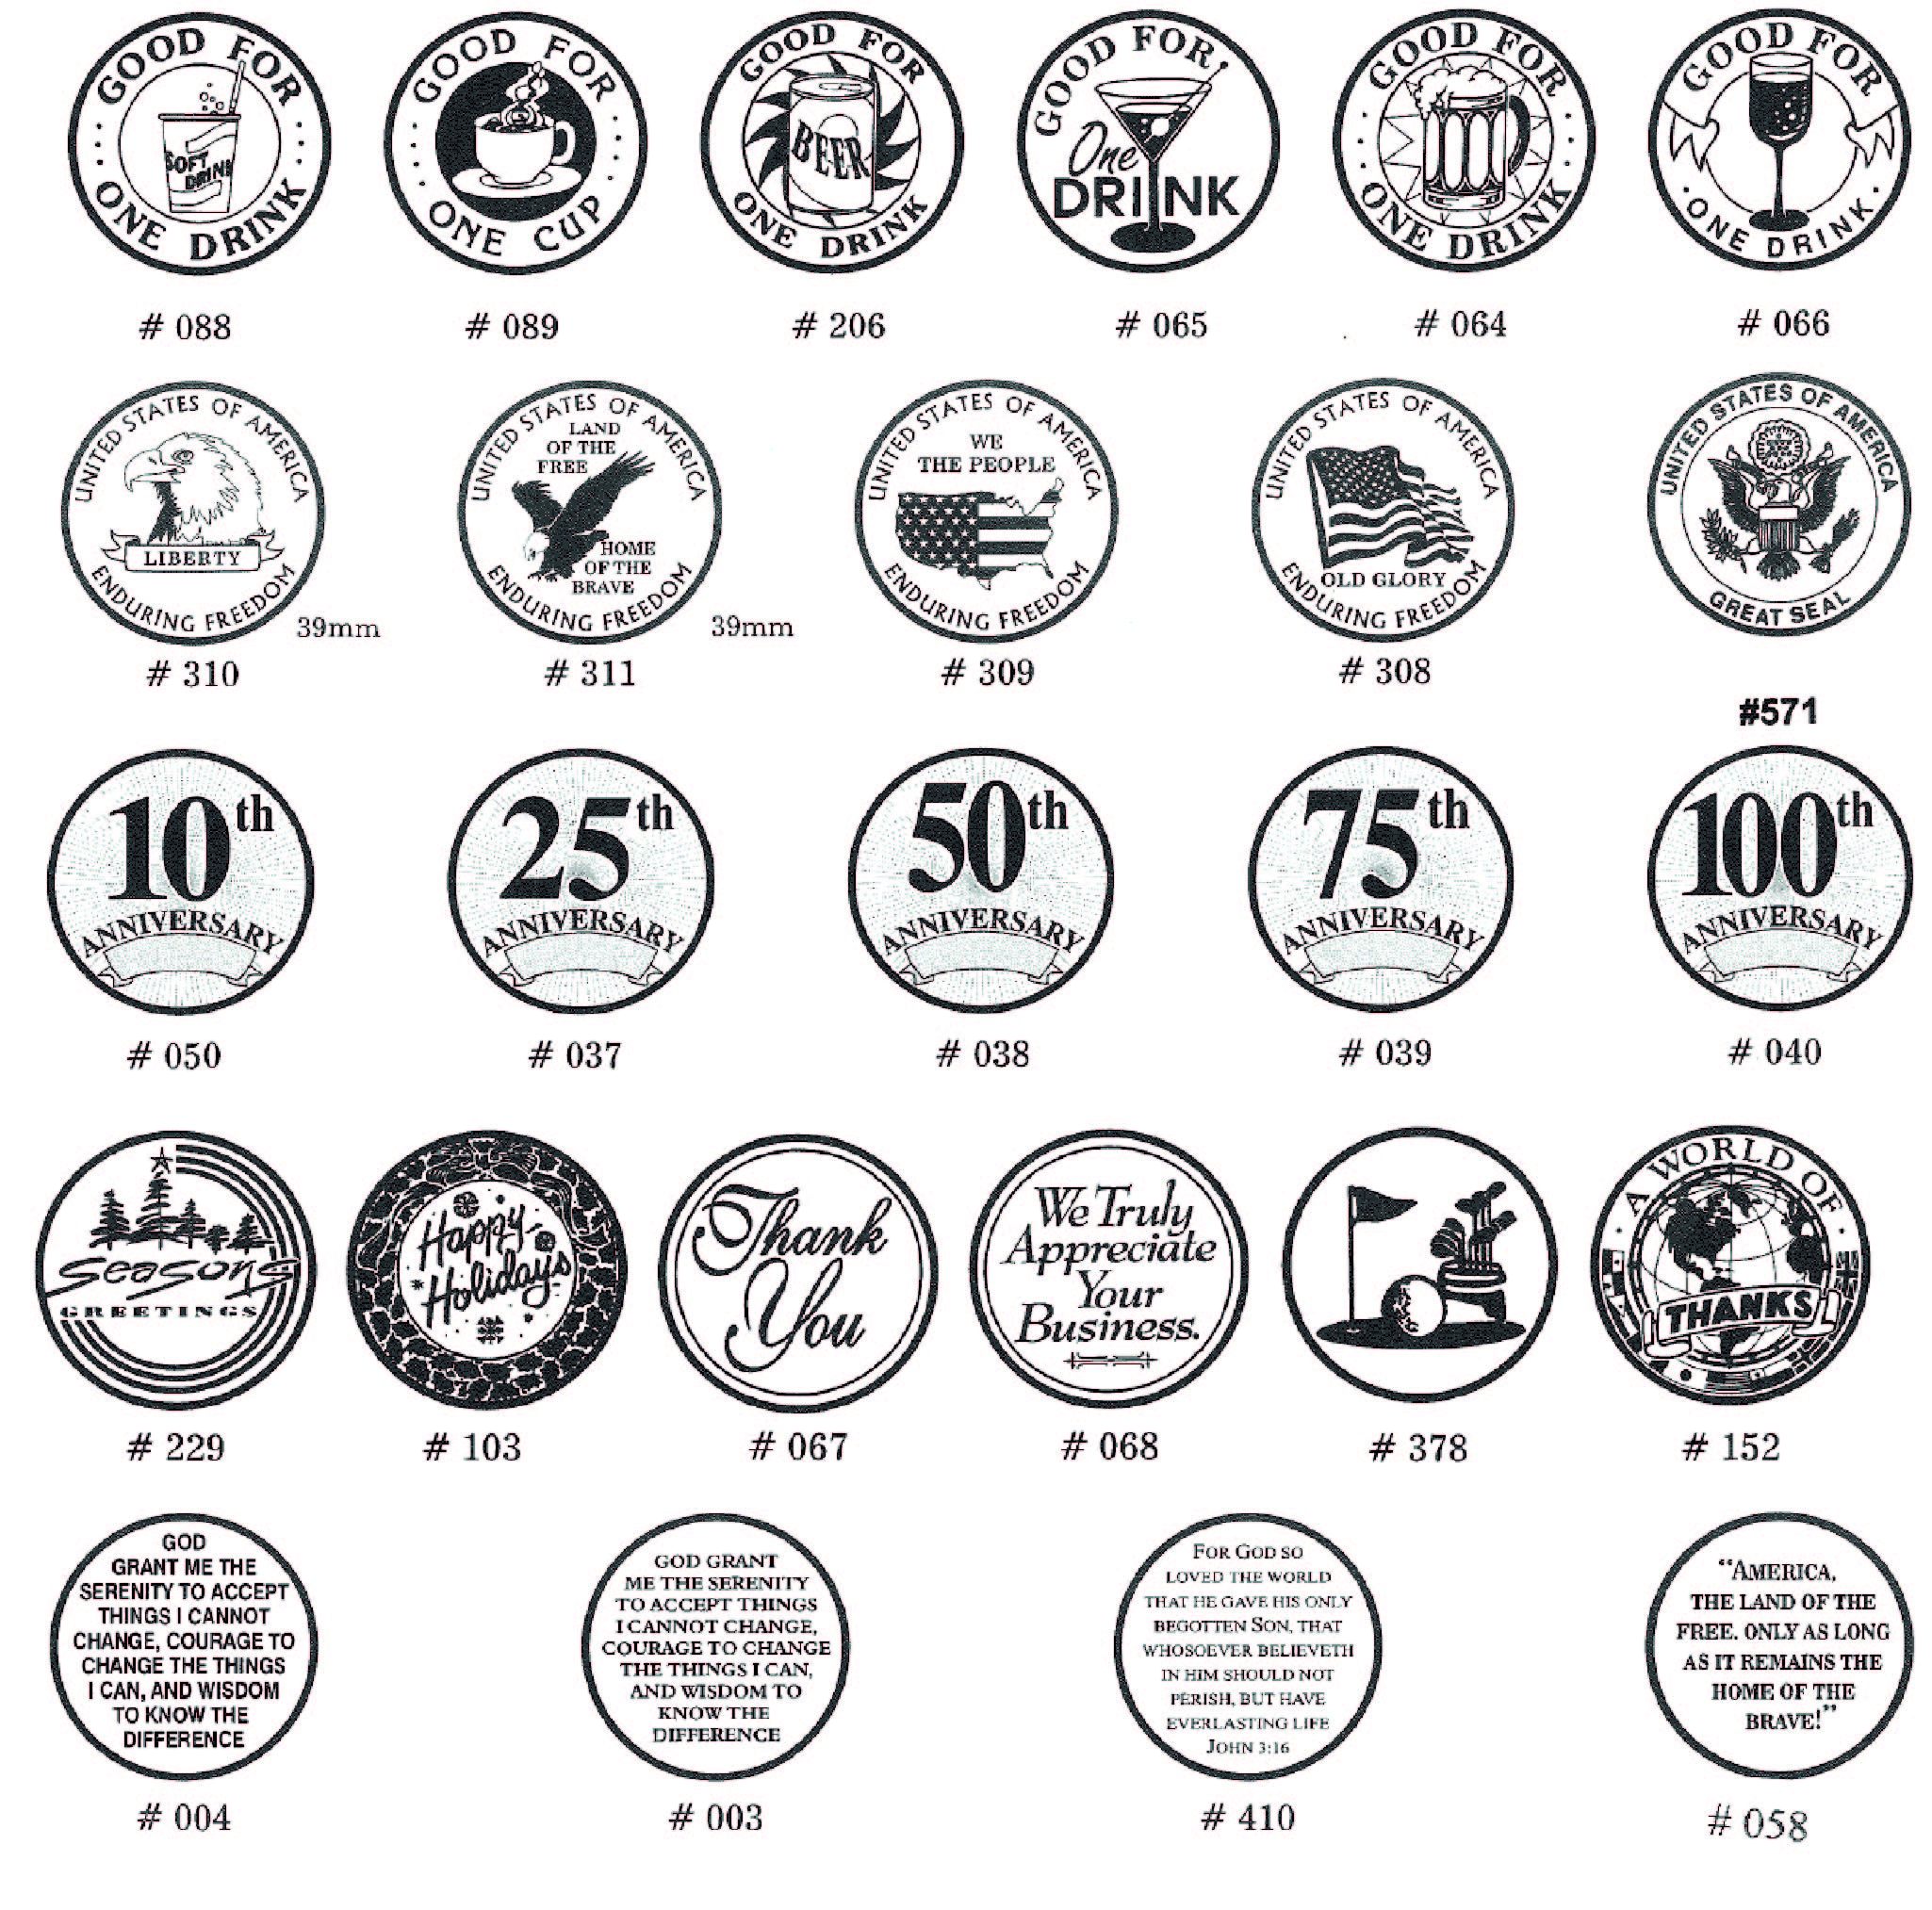 http://files.b-token.us/files/379/original/Aluminium tokens standard designs.jpg?1568362494